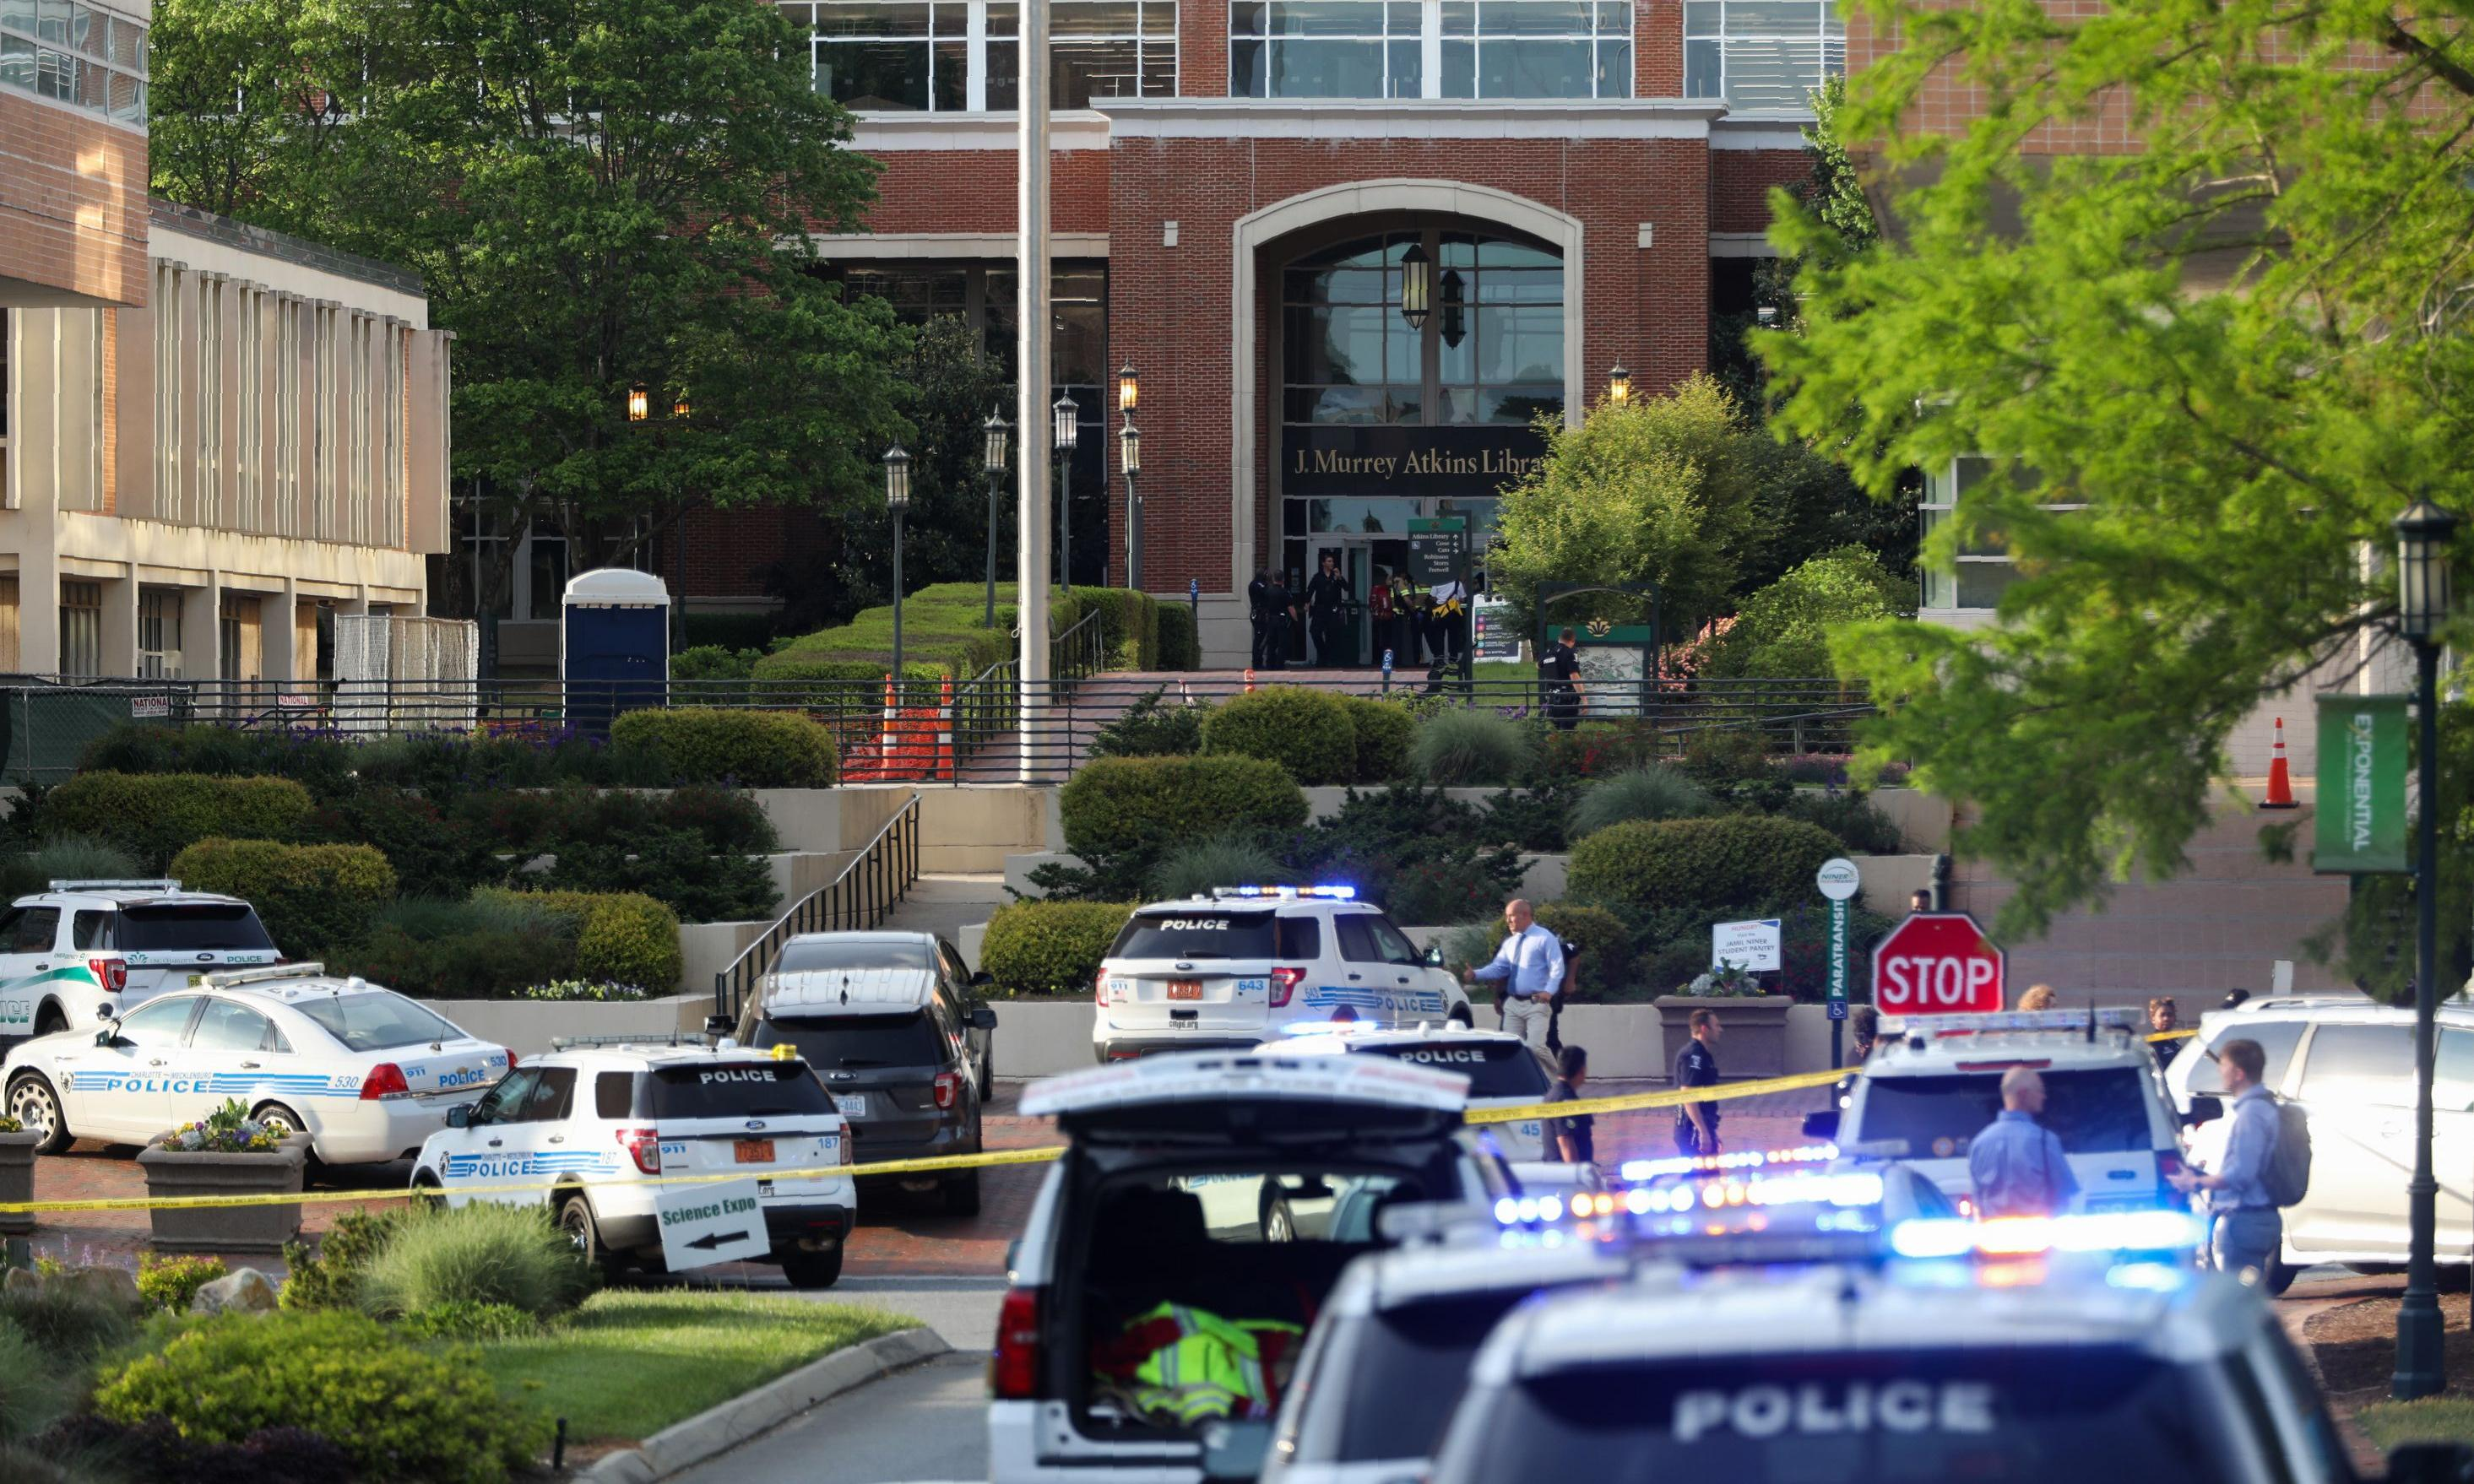 North Carolina university lifts curfew after shooting that killed two